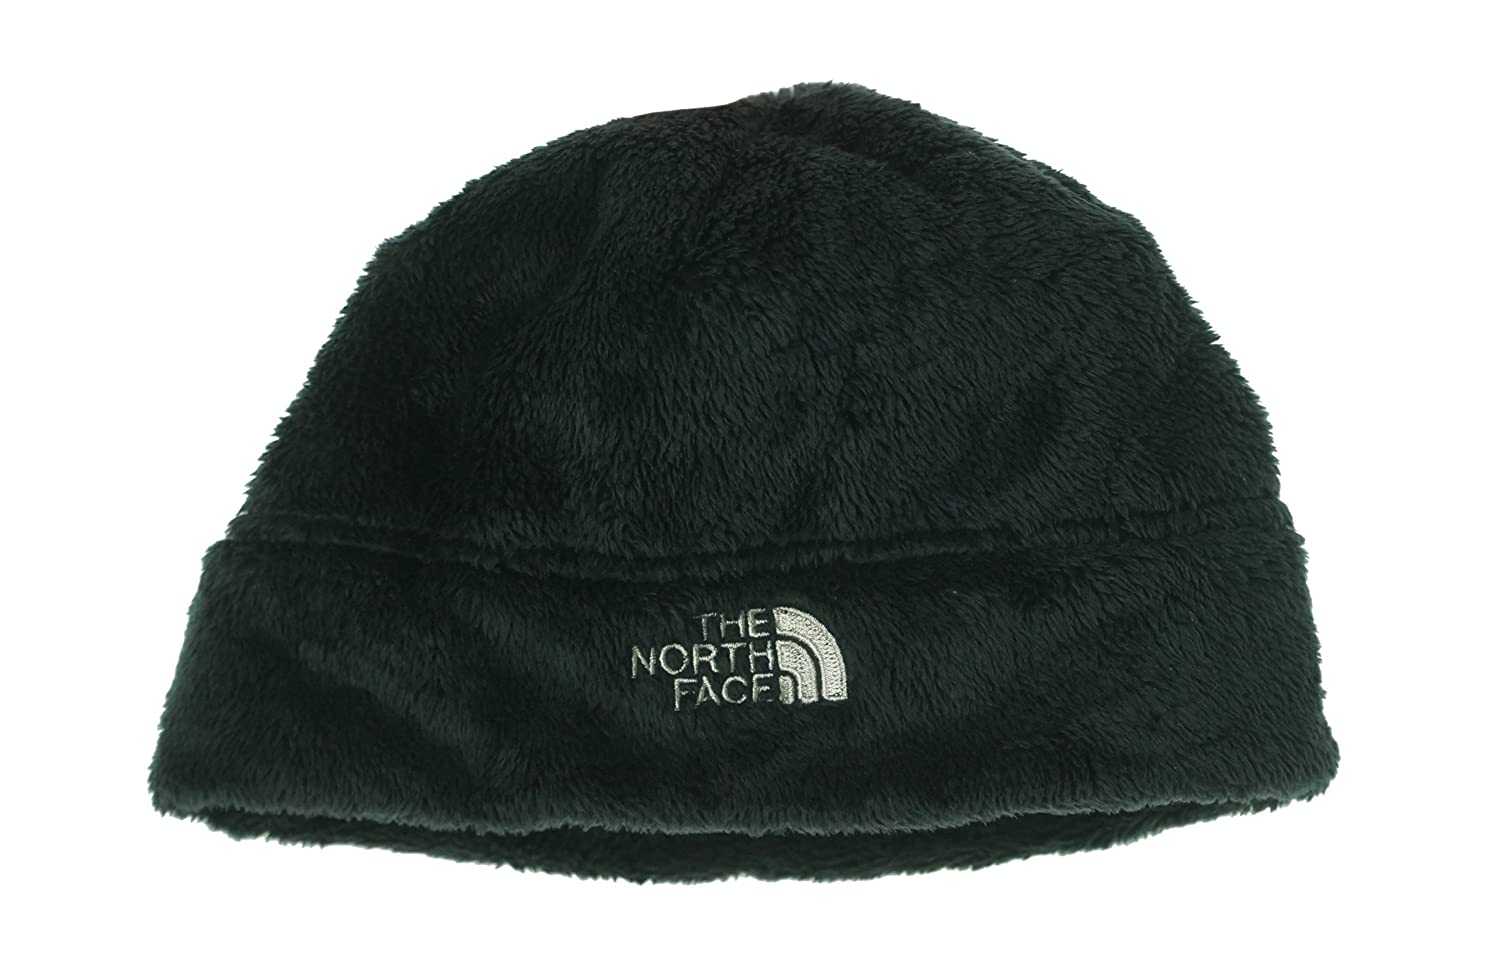 d269ecfea2a The north face girls denali thermal beanie at amazon mens clothing store  jpg 1500x974 North face